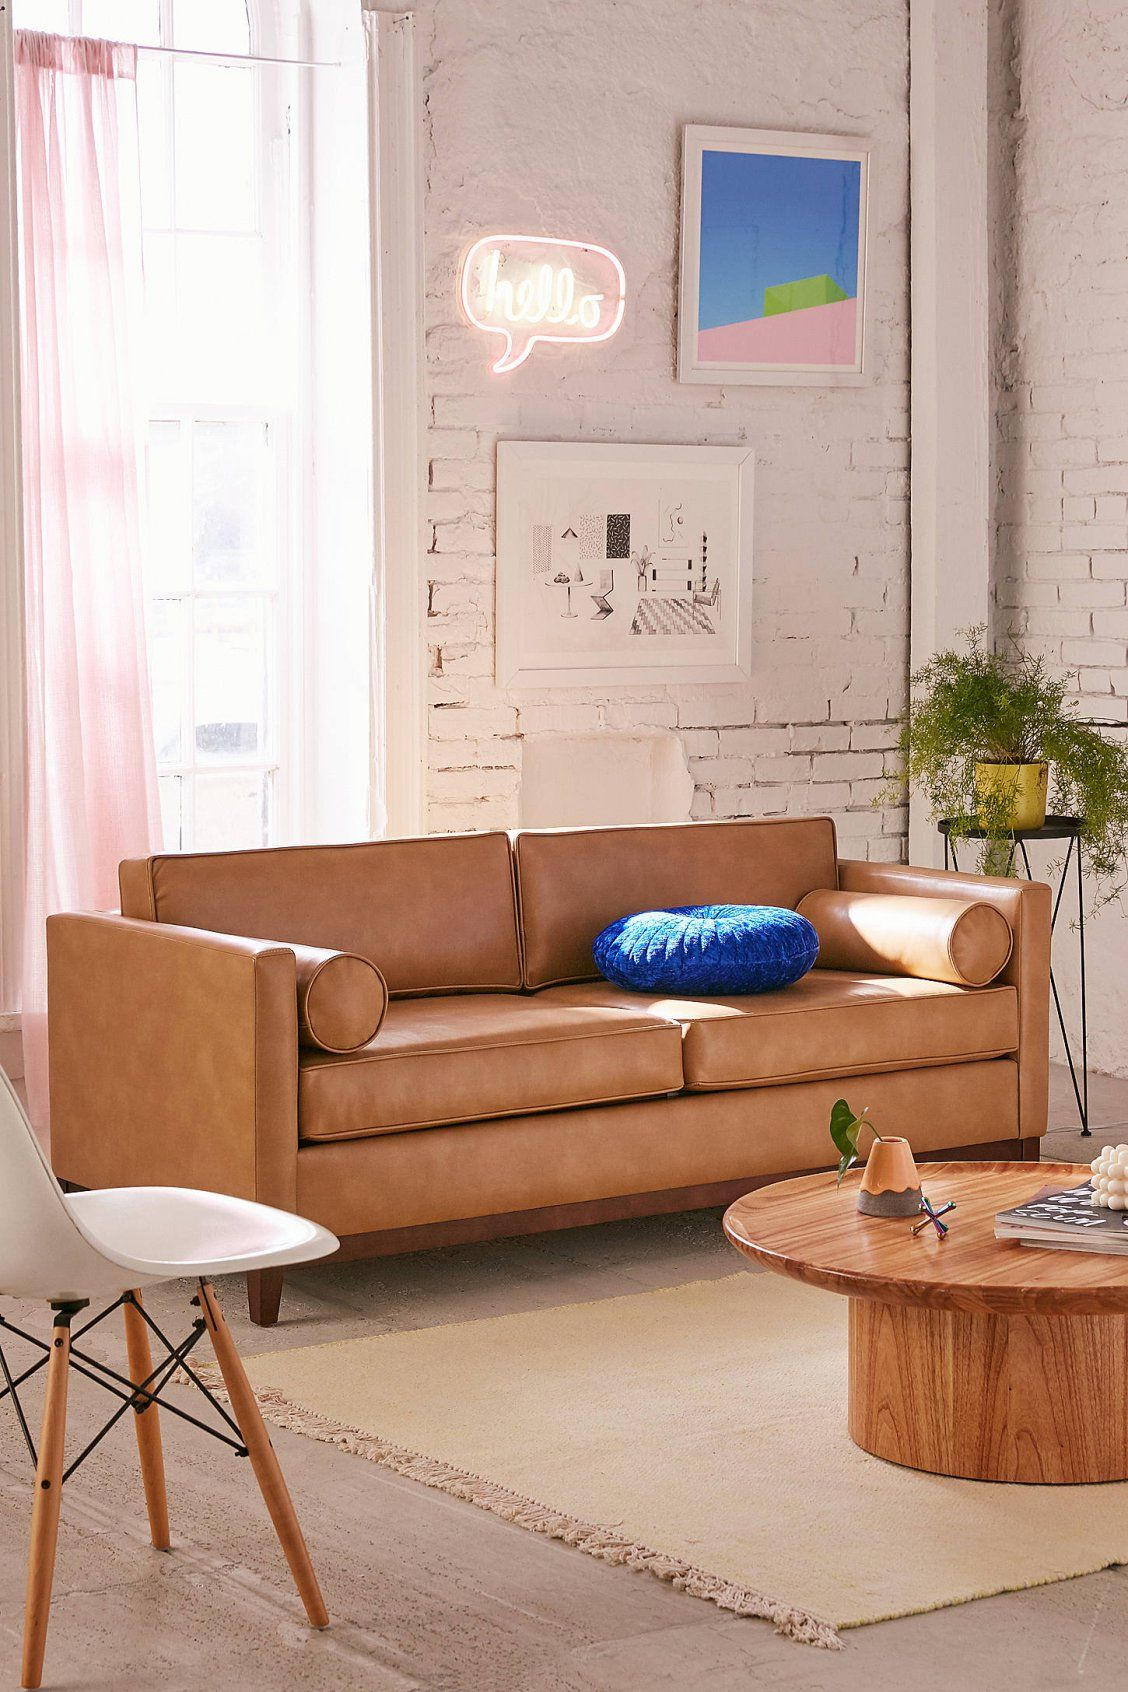 Groovy Piper Petite Recycled Leather Sofa Uohome Leather Sofa Ibusinesslaw Wood Chair Design Ideas Ibusinesslaworg